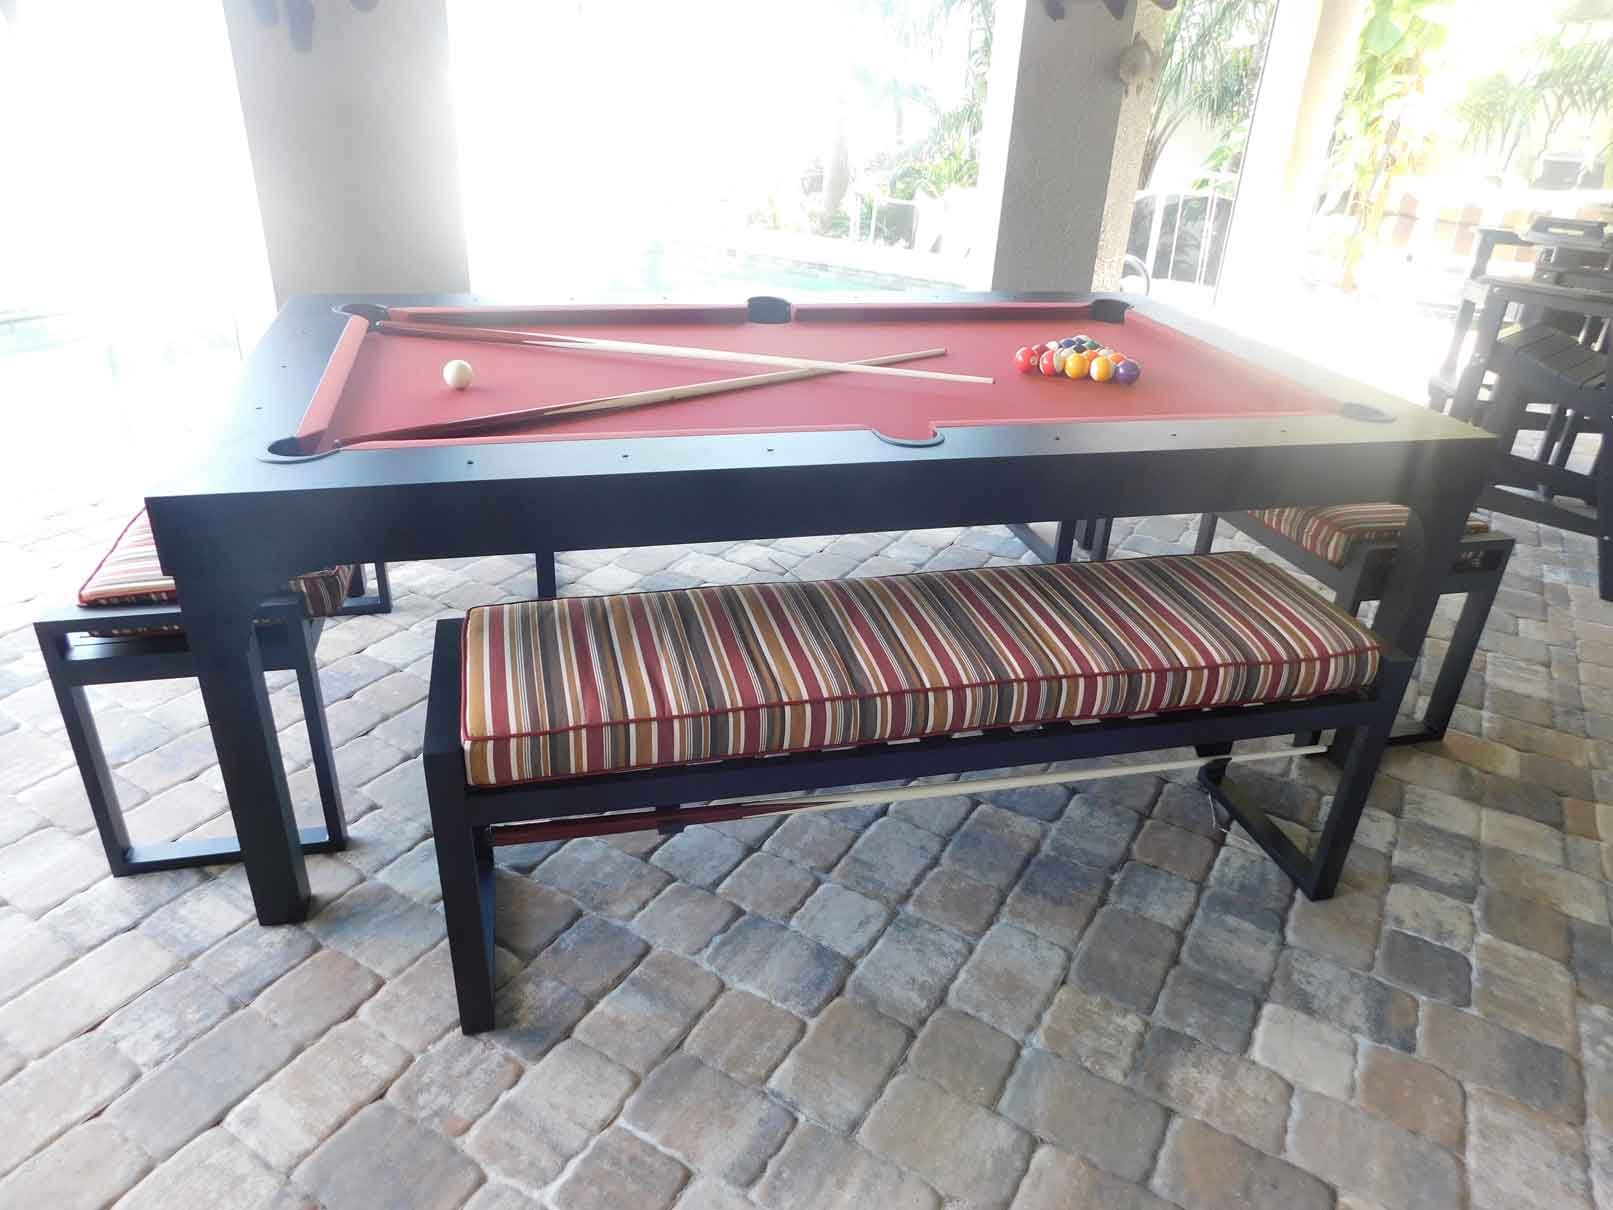 Balcony custom outdoor pool table with seating accessories for entertaining